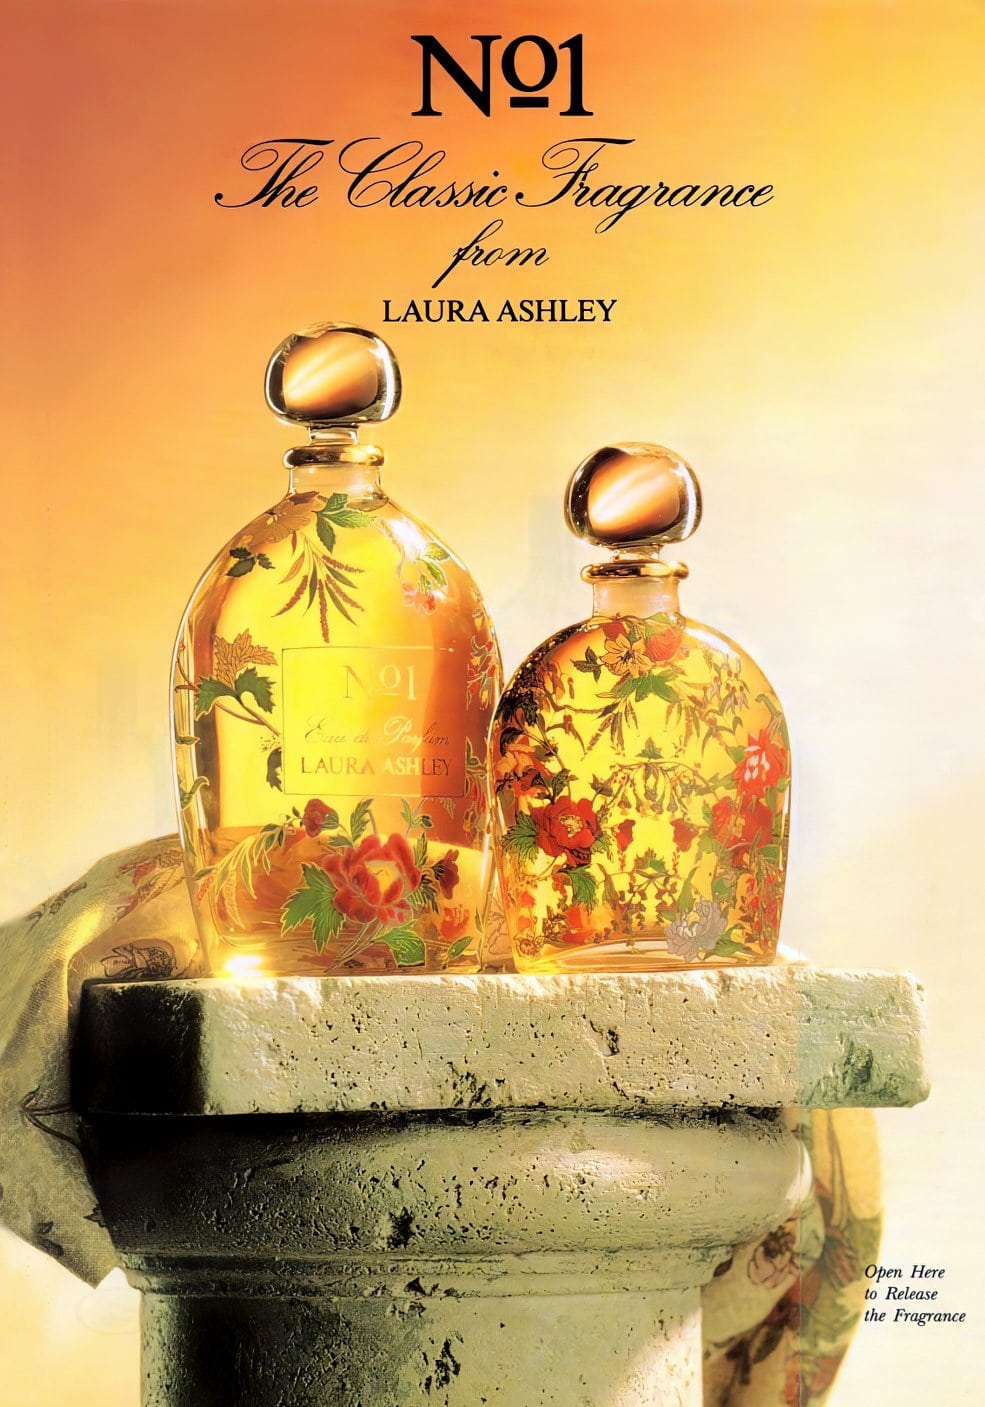 No 1 classic fragrance from Laura Ashley (1992)